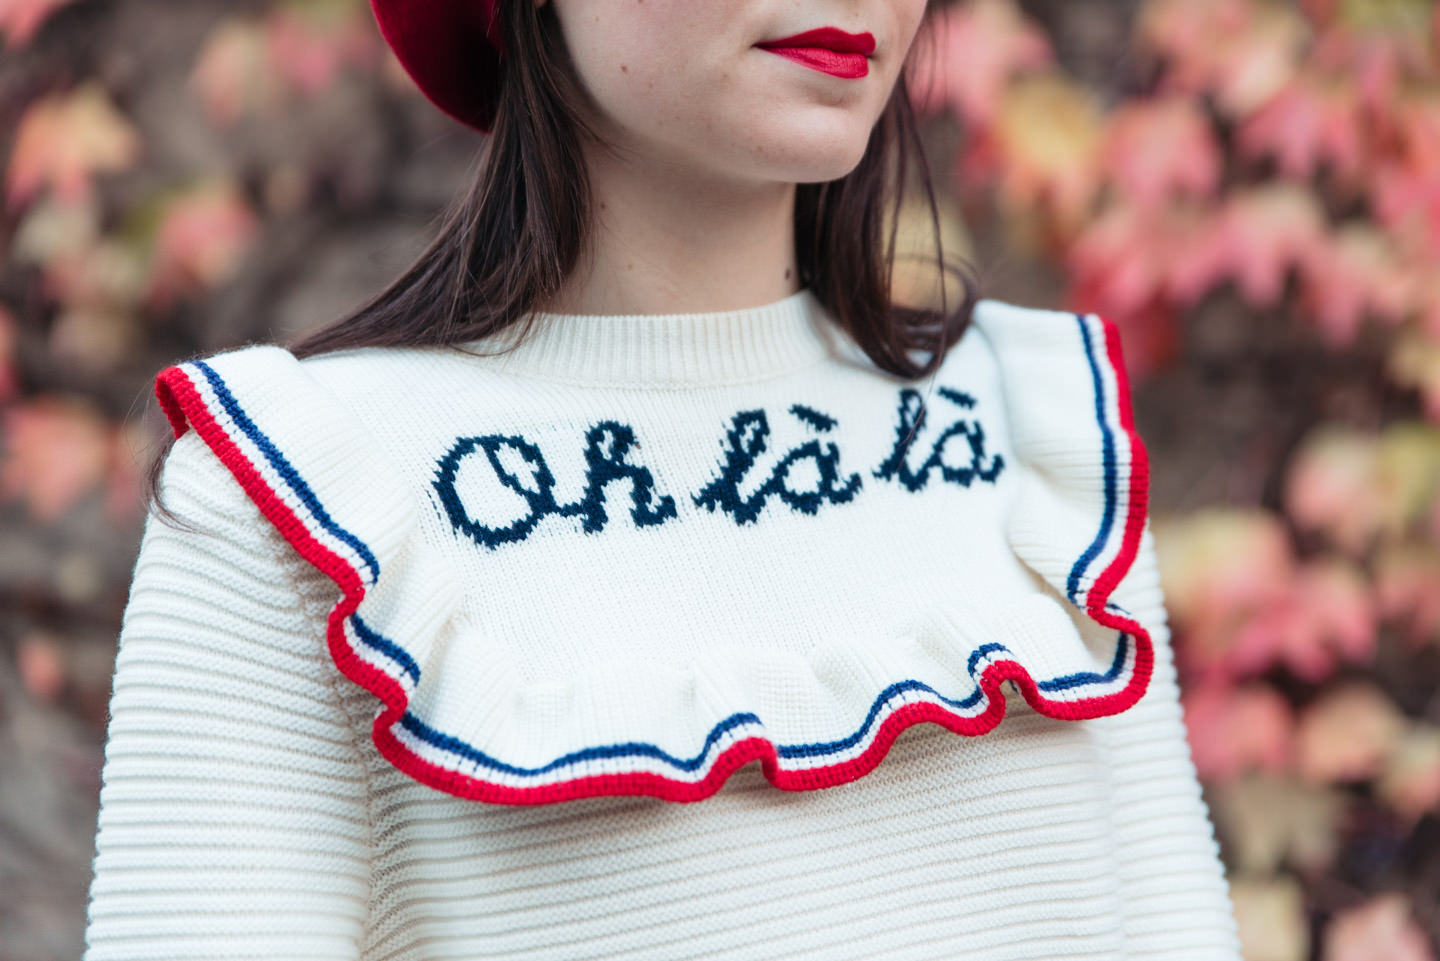 Blog-Mode-And-The-City-Looks-Ohlala-sweater-Lazzari-2